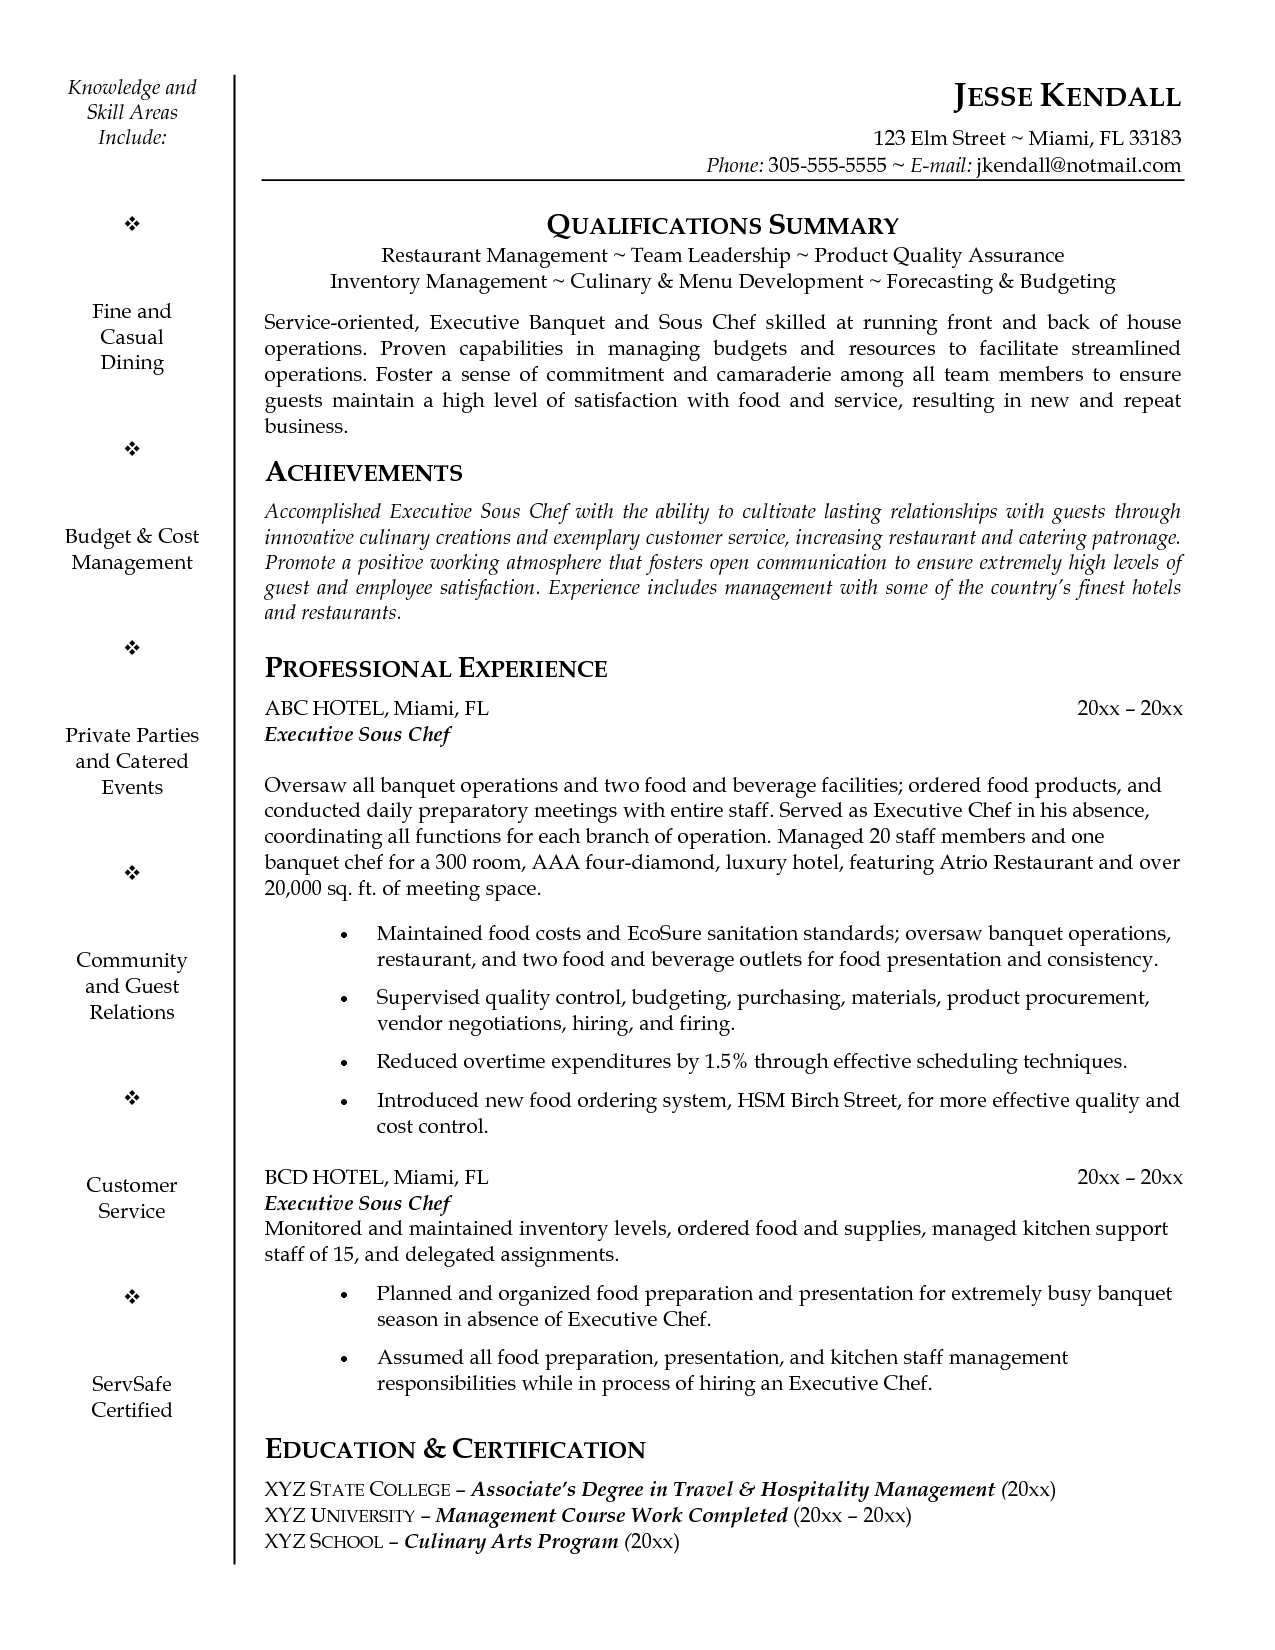 A Good Resume Objective Sous Chef Resume Examples  Httpwwwjobresumewebsitesouschef